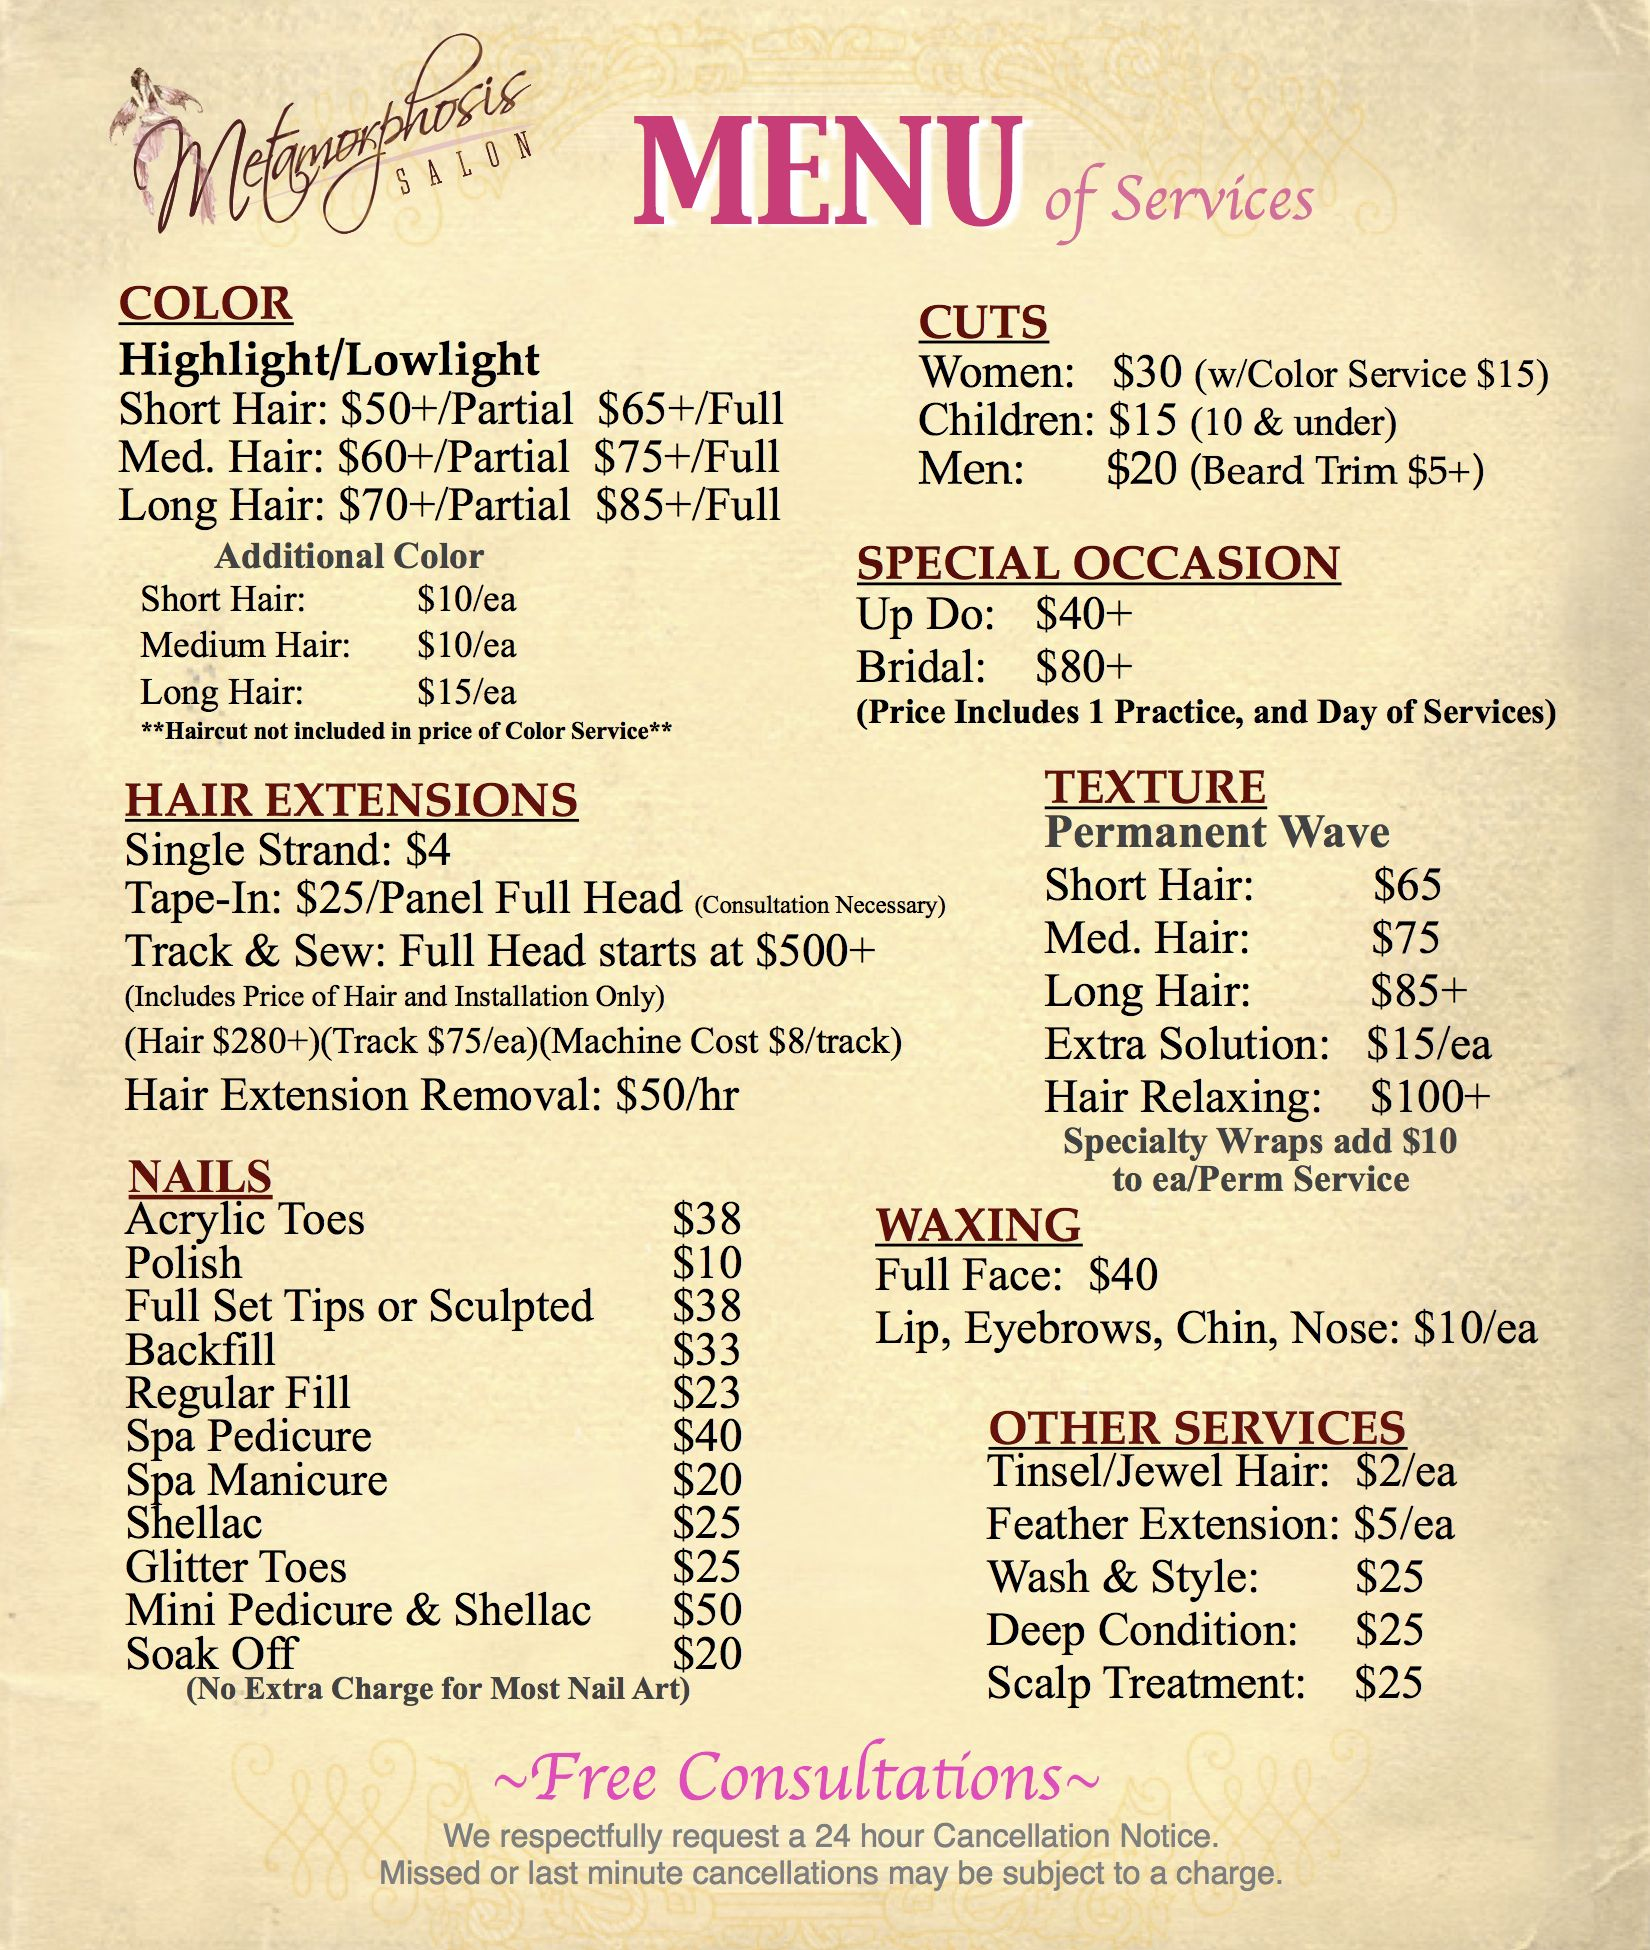 Wedding Hairstyle Price List: @Queeny Ja Salon Menu Of #Services. #Free #Consultations